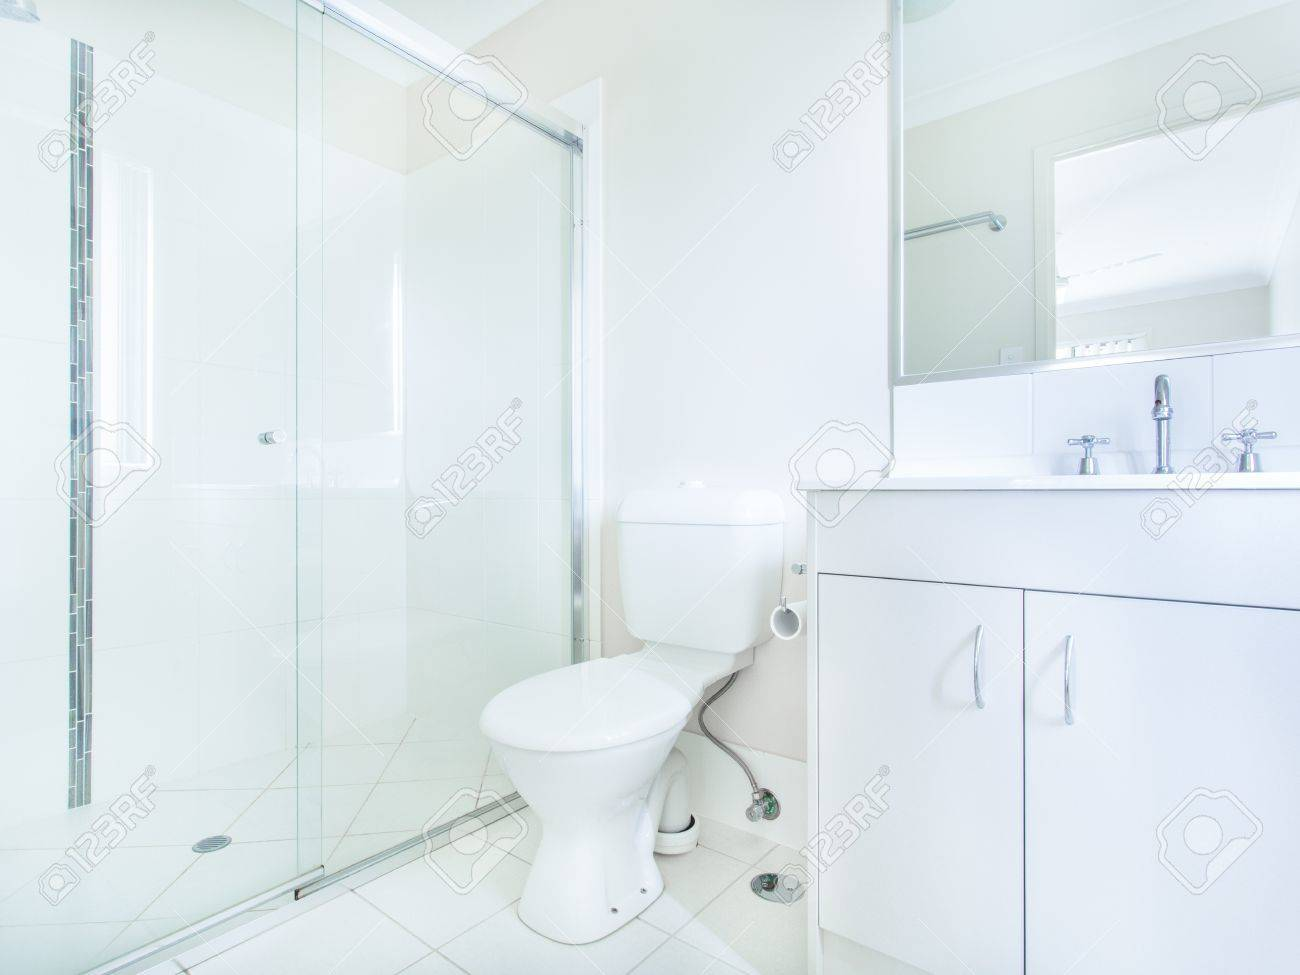 Simple bathroom shower - Simple Bathroom With Sink Mirror Toilet And Shower Stock Photo 18456135